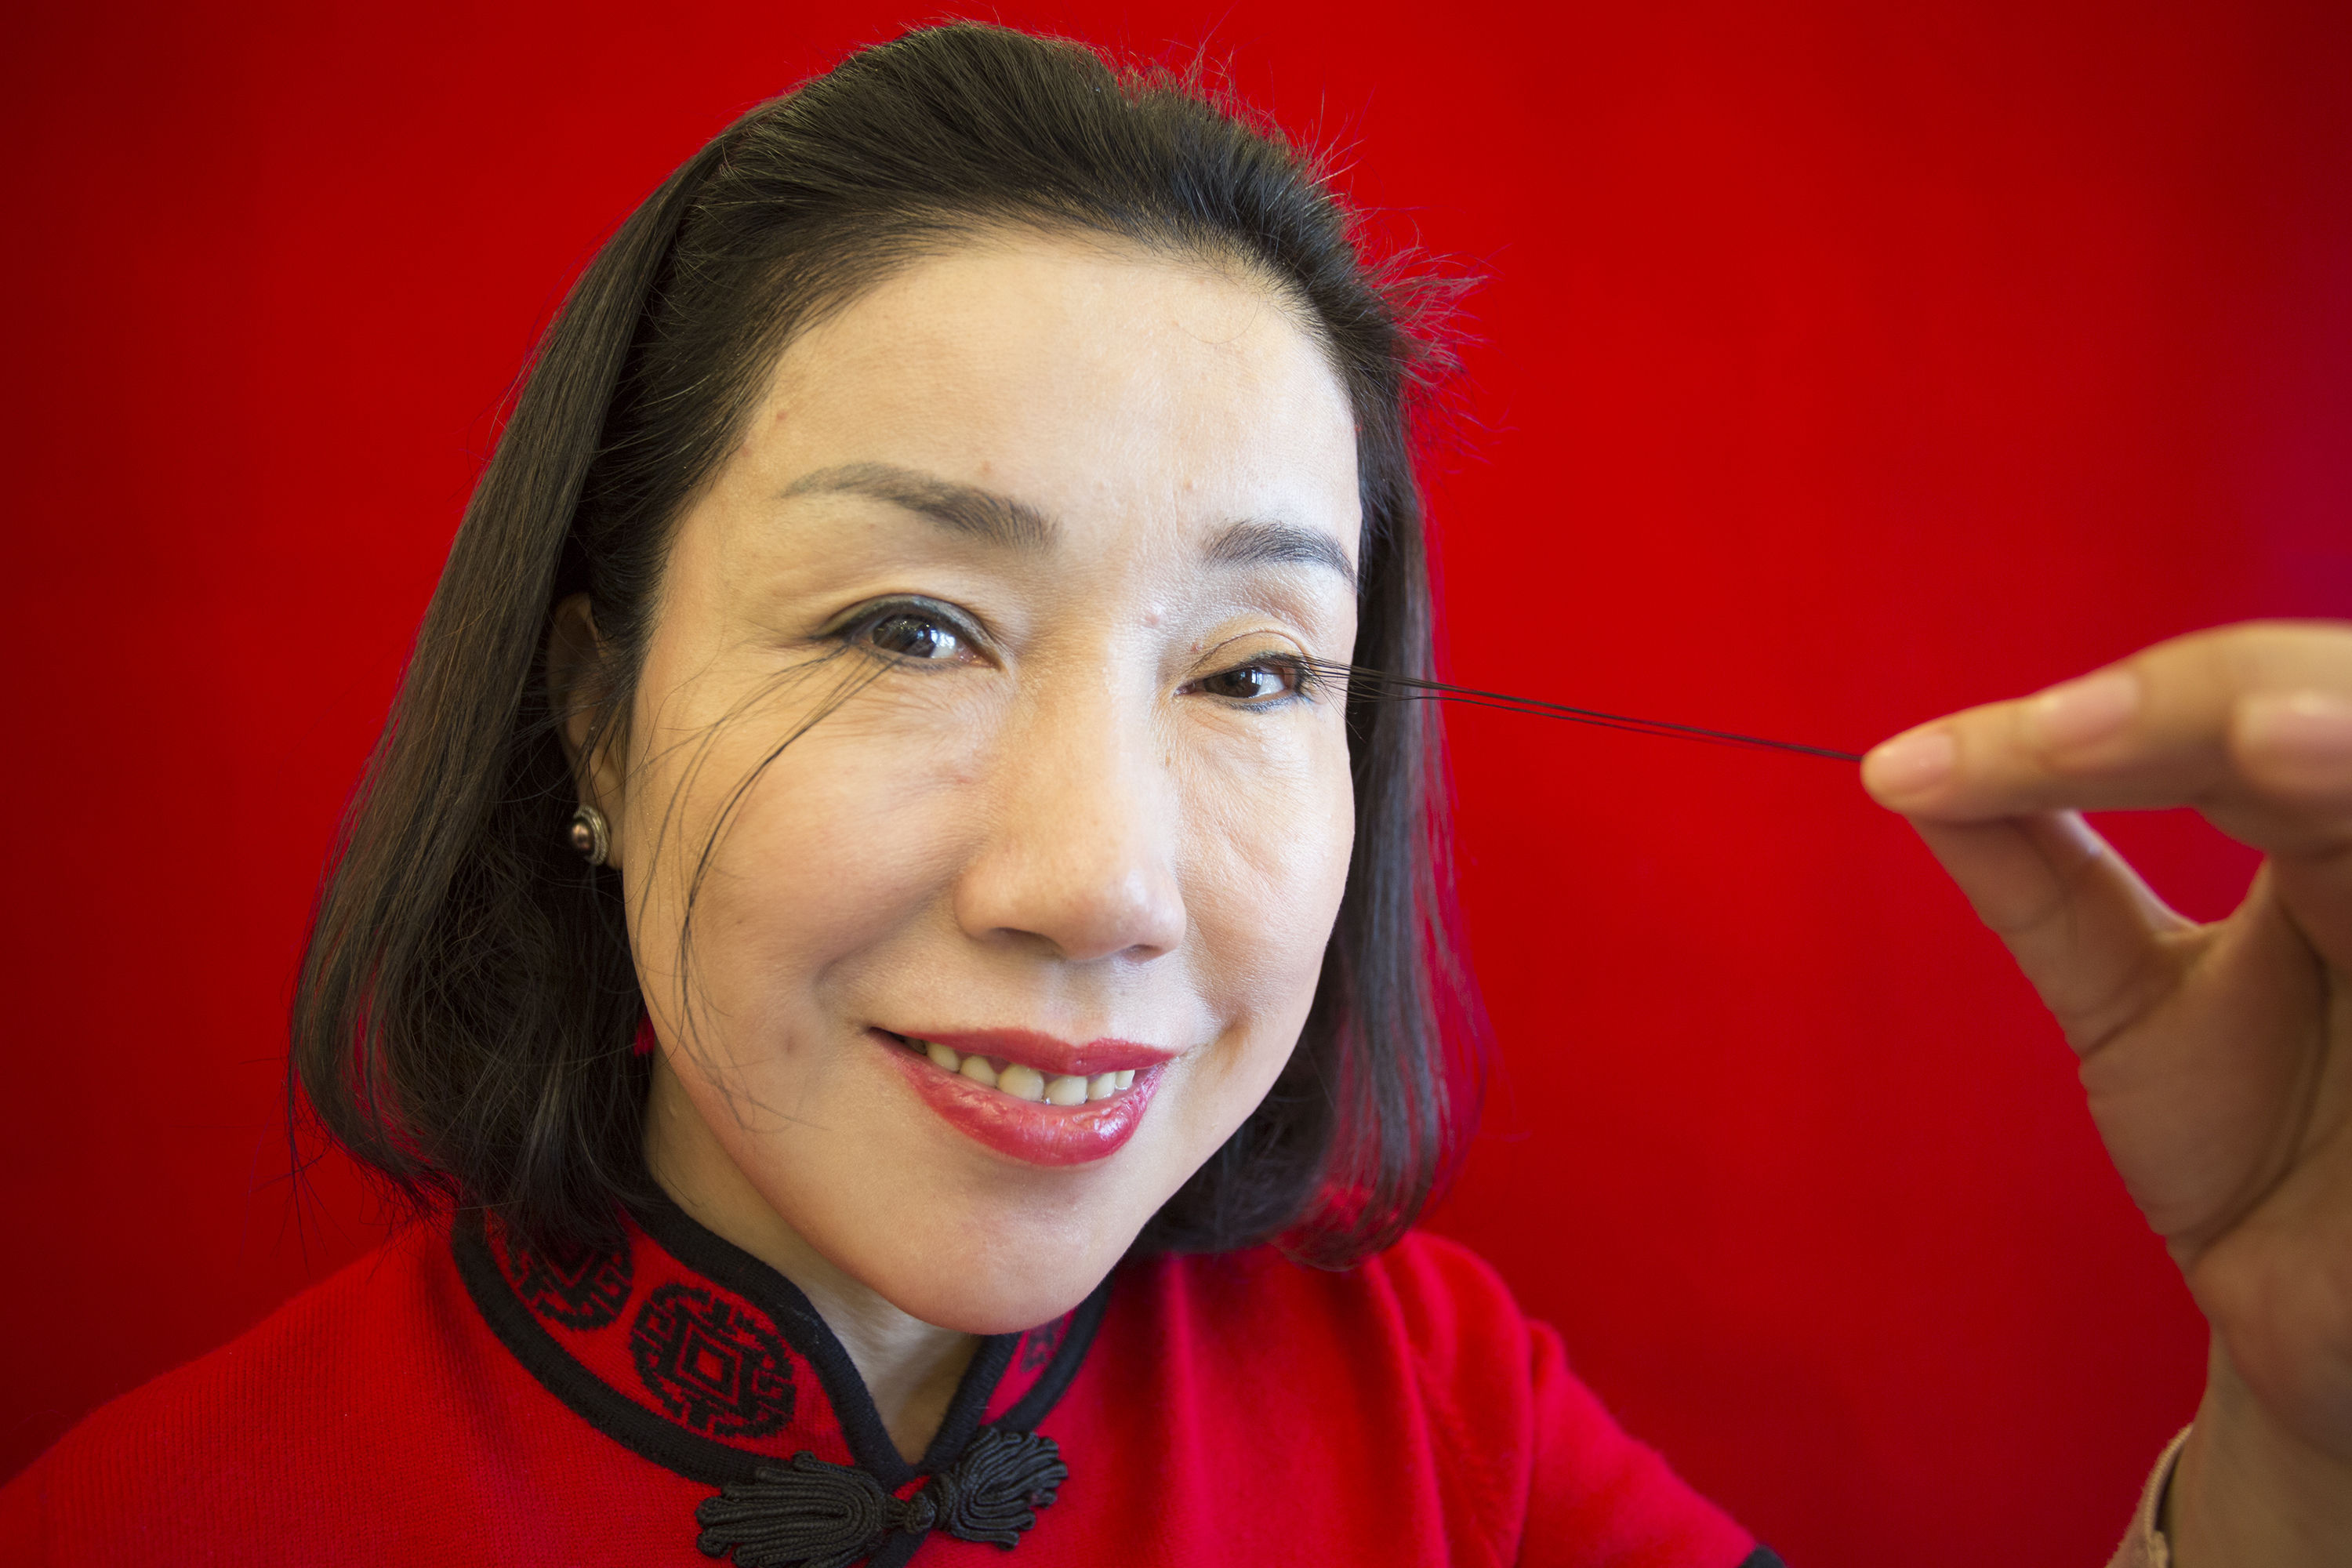 Lady in China wins the Guinness record for longest eyelashes